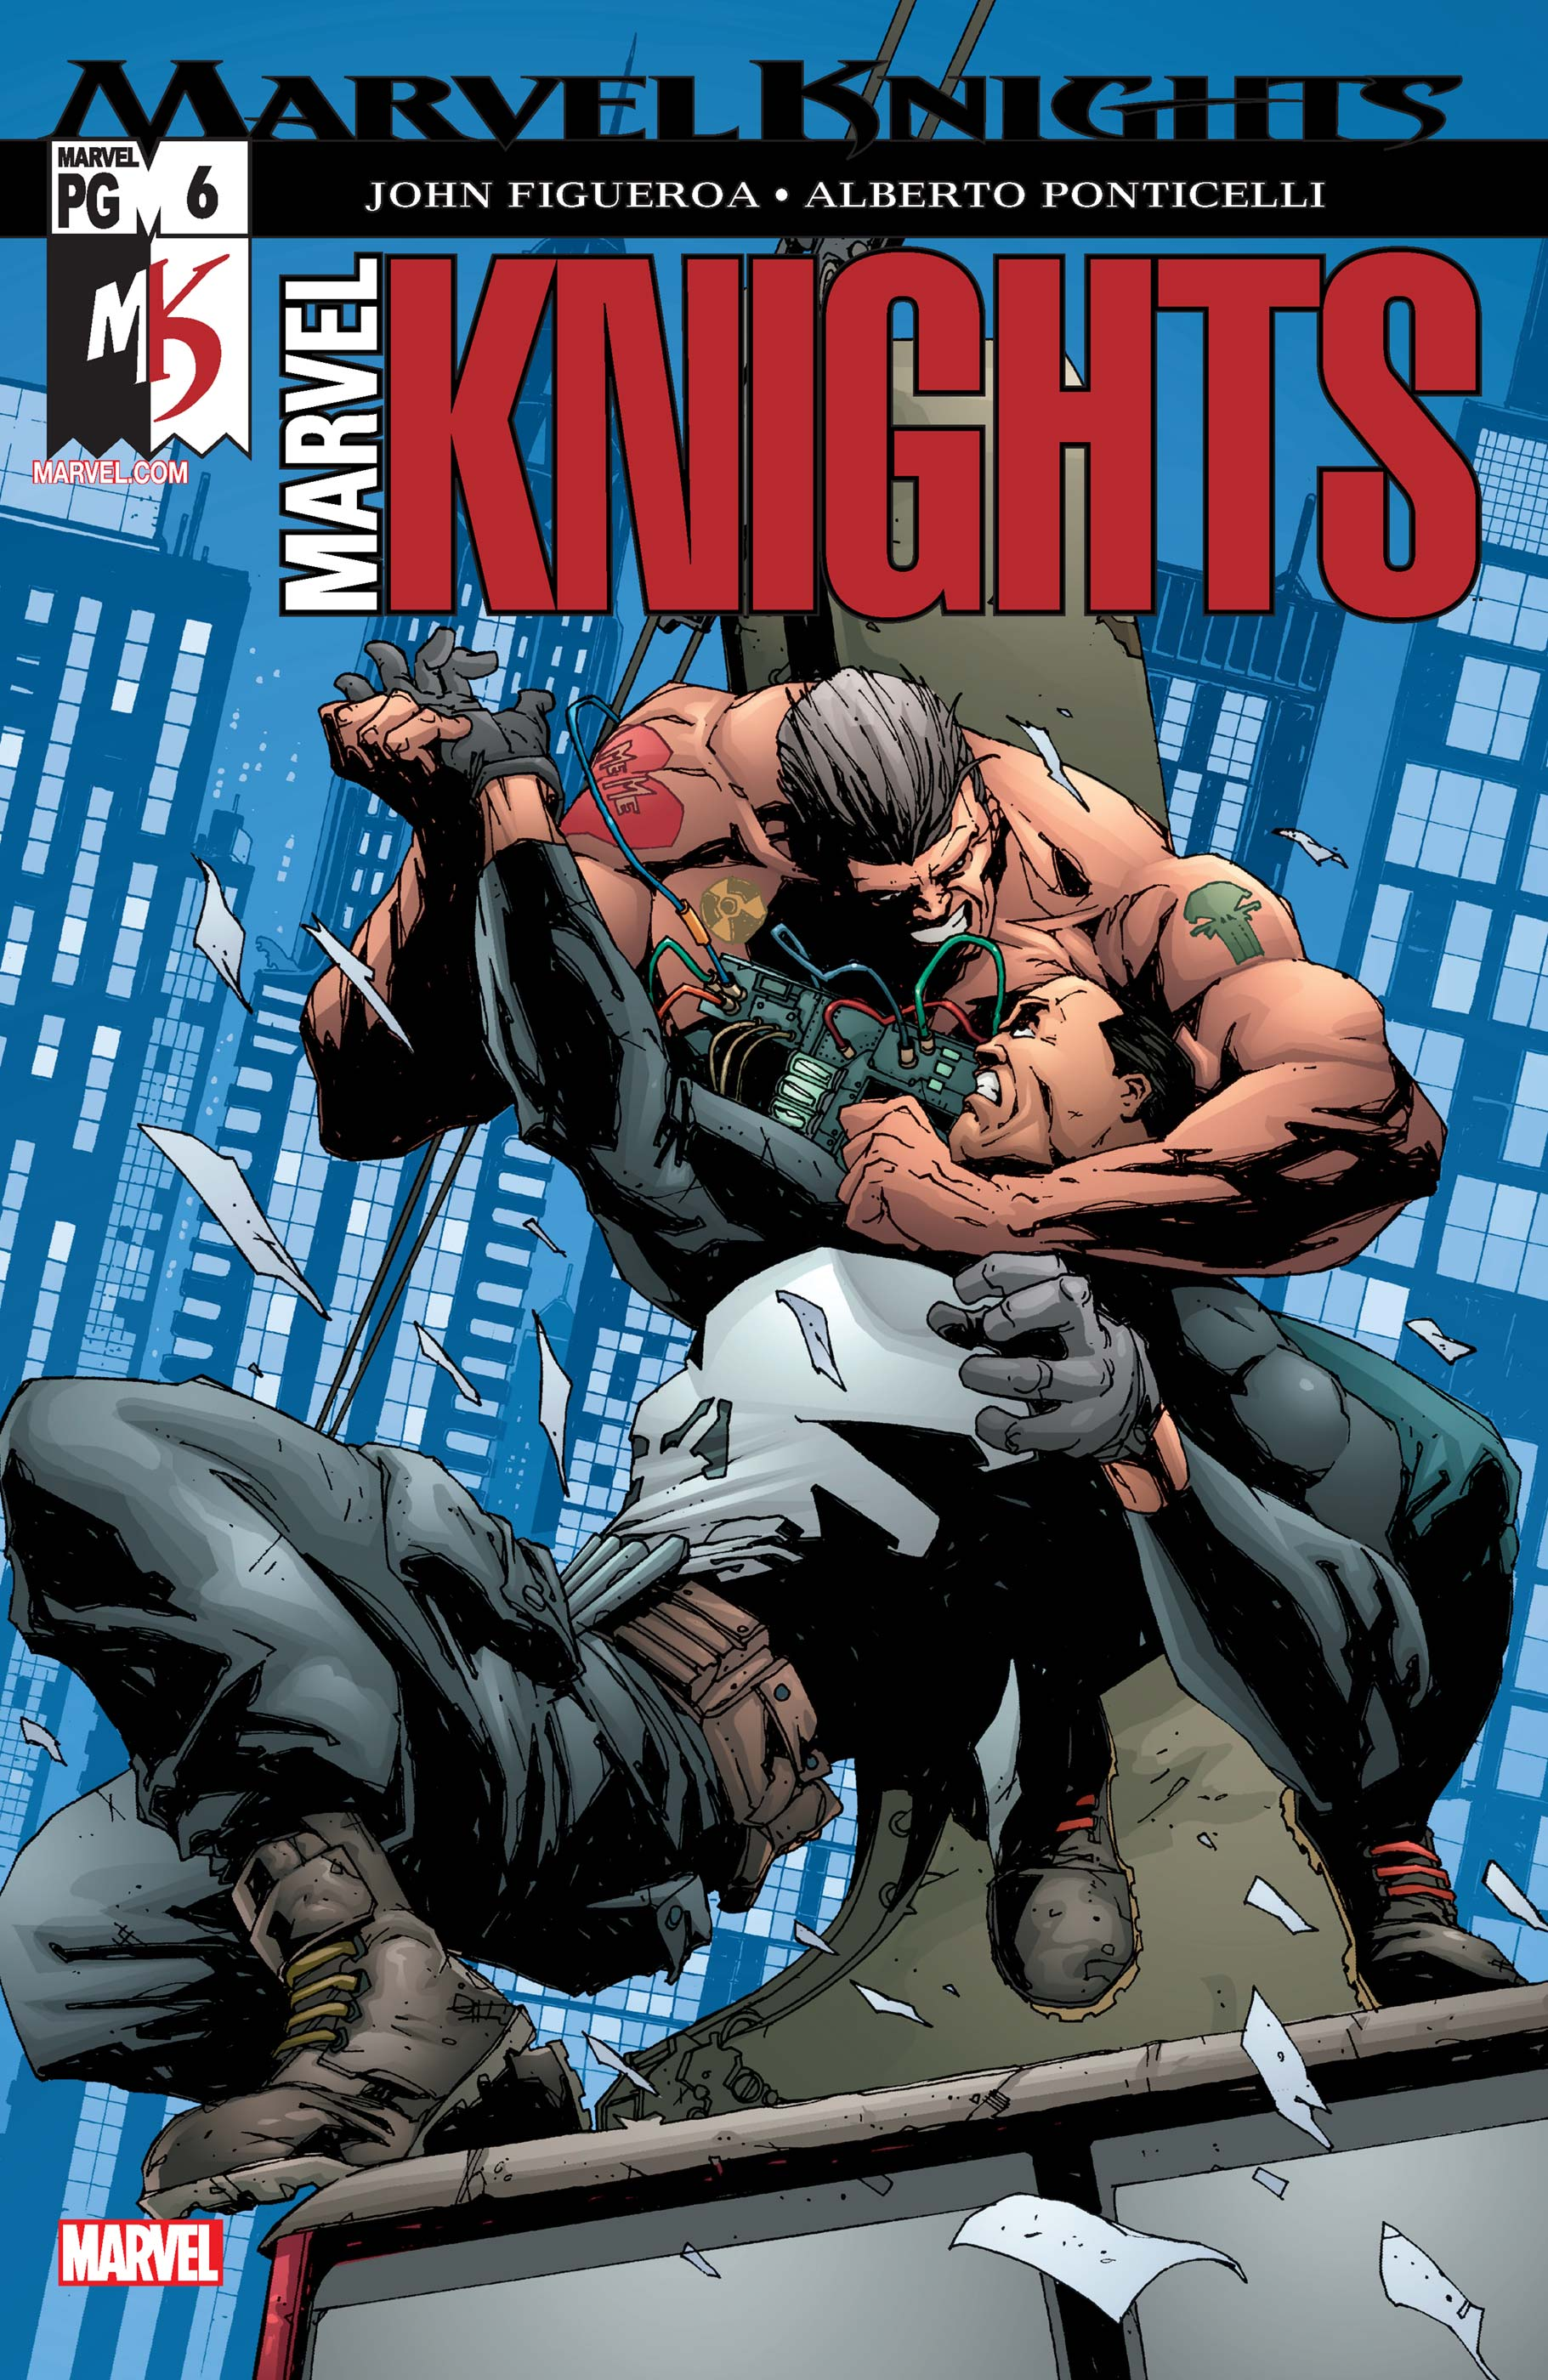 Marvel Knights (2002) #6